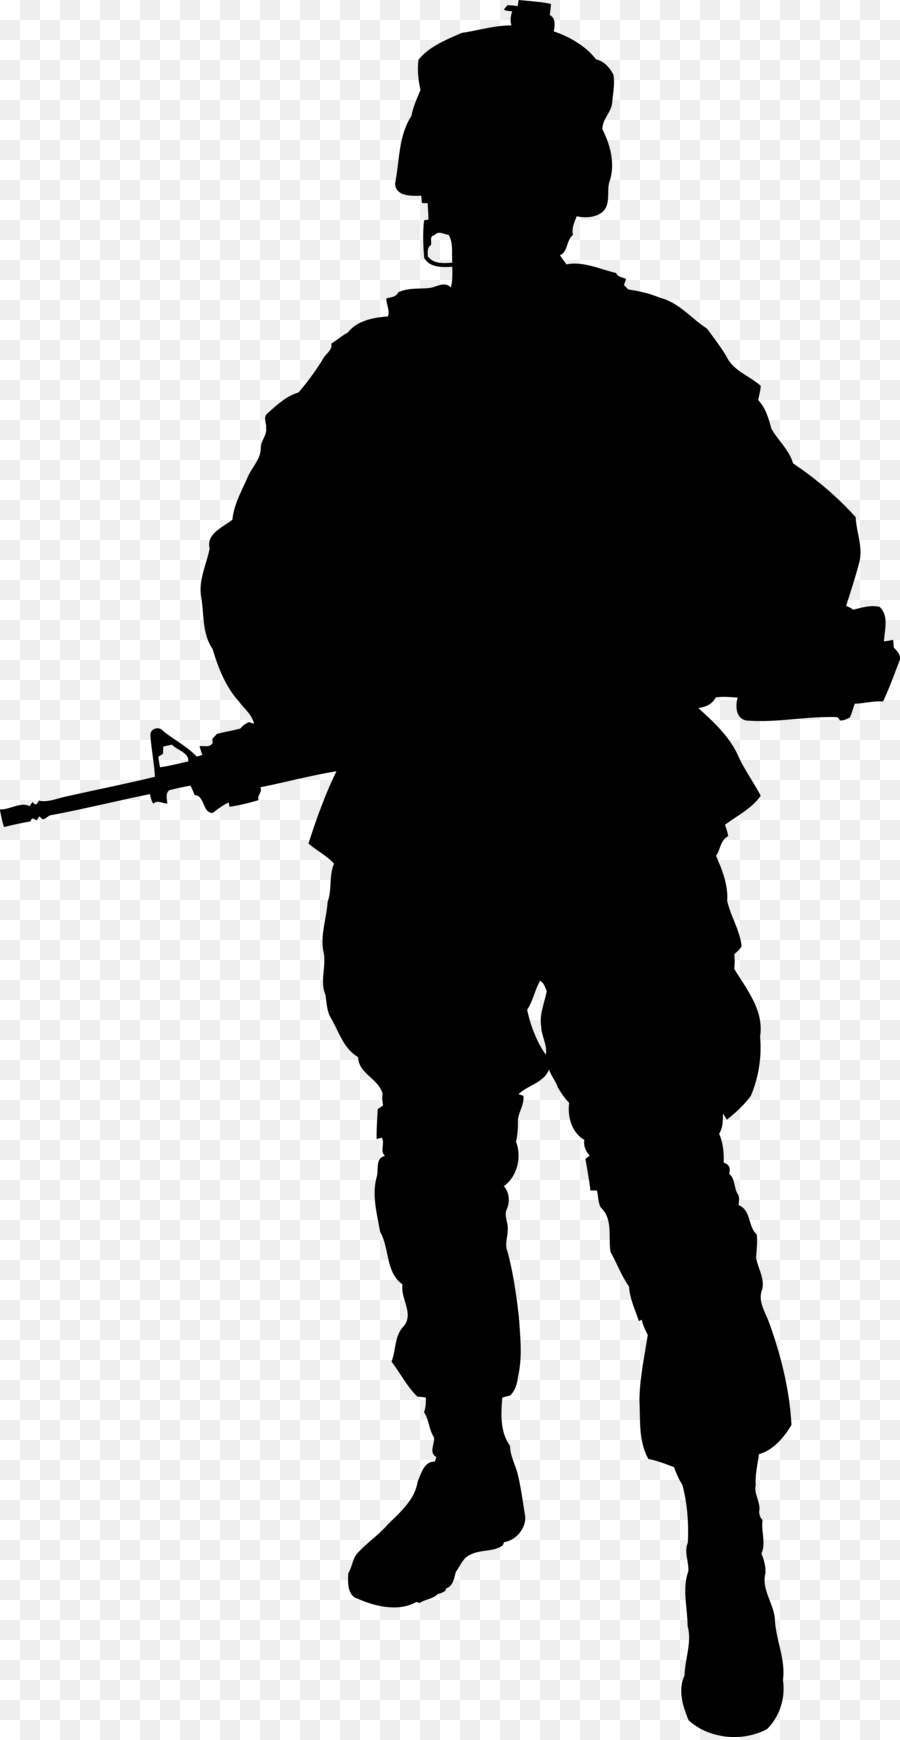 soldier silhouette soldier clipart silhouette 10 free cliparts download soldier silhouette